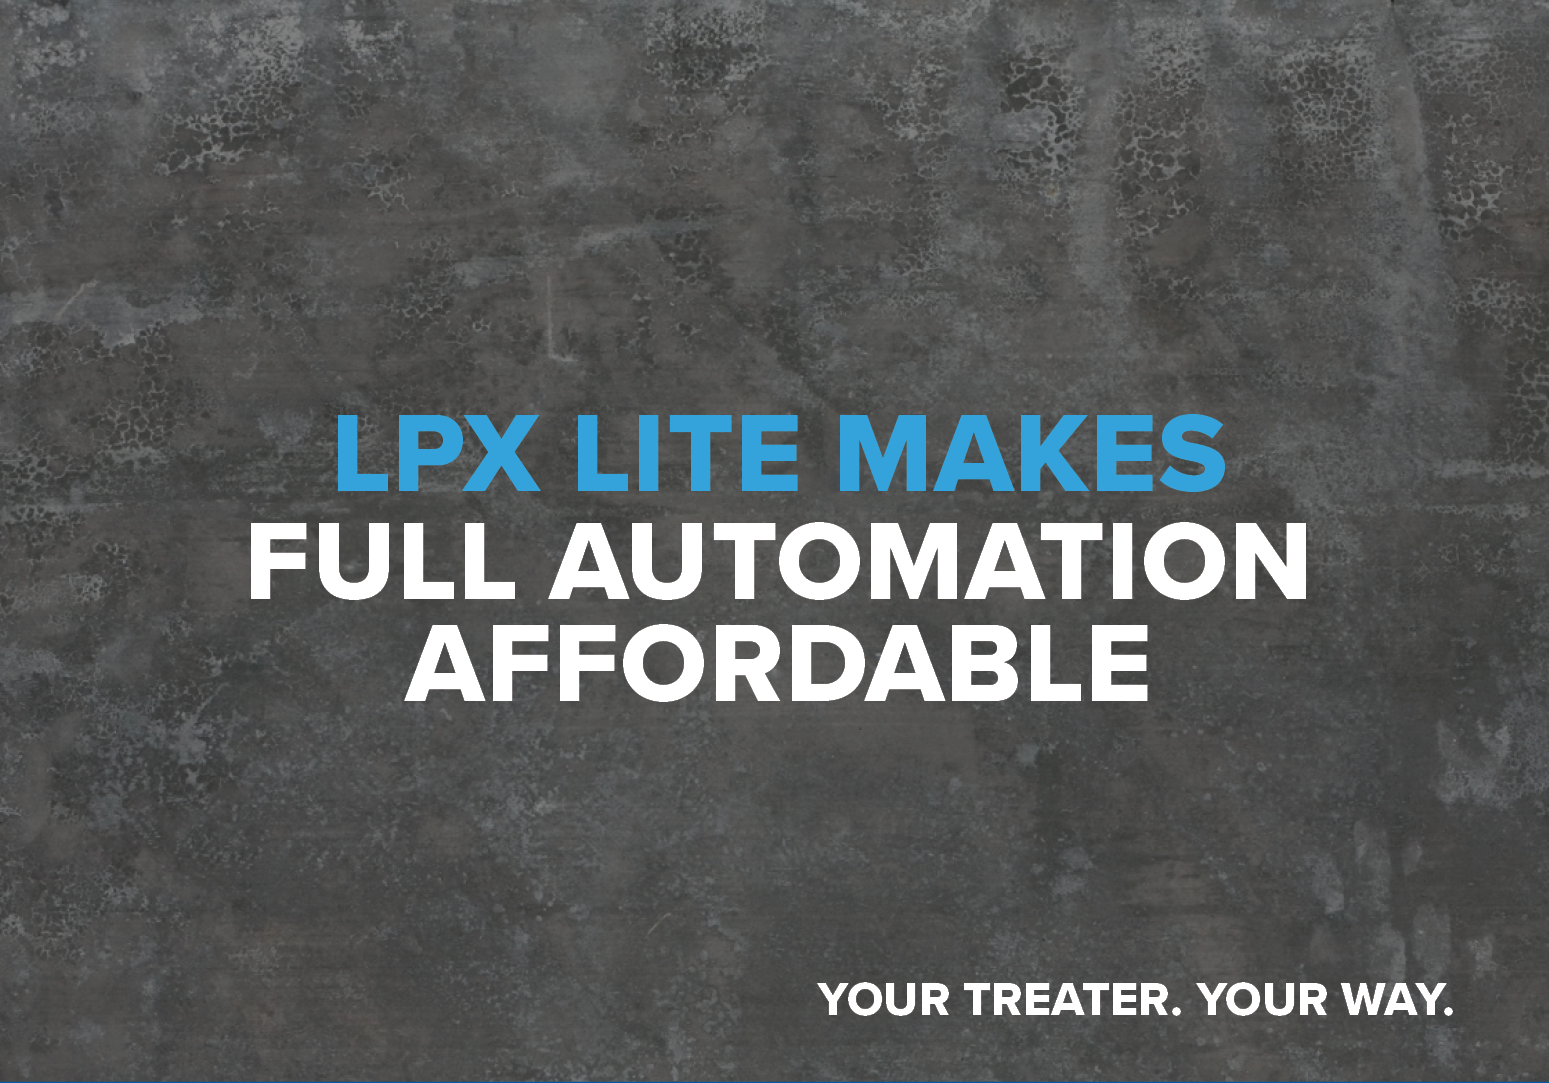 LPX Lite makes full automation affordable